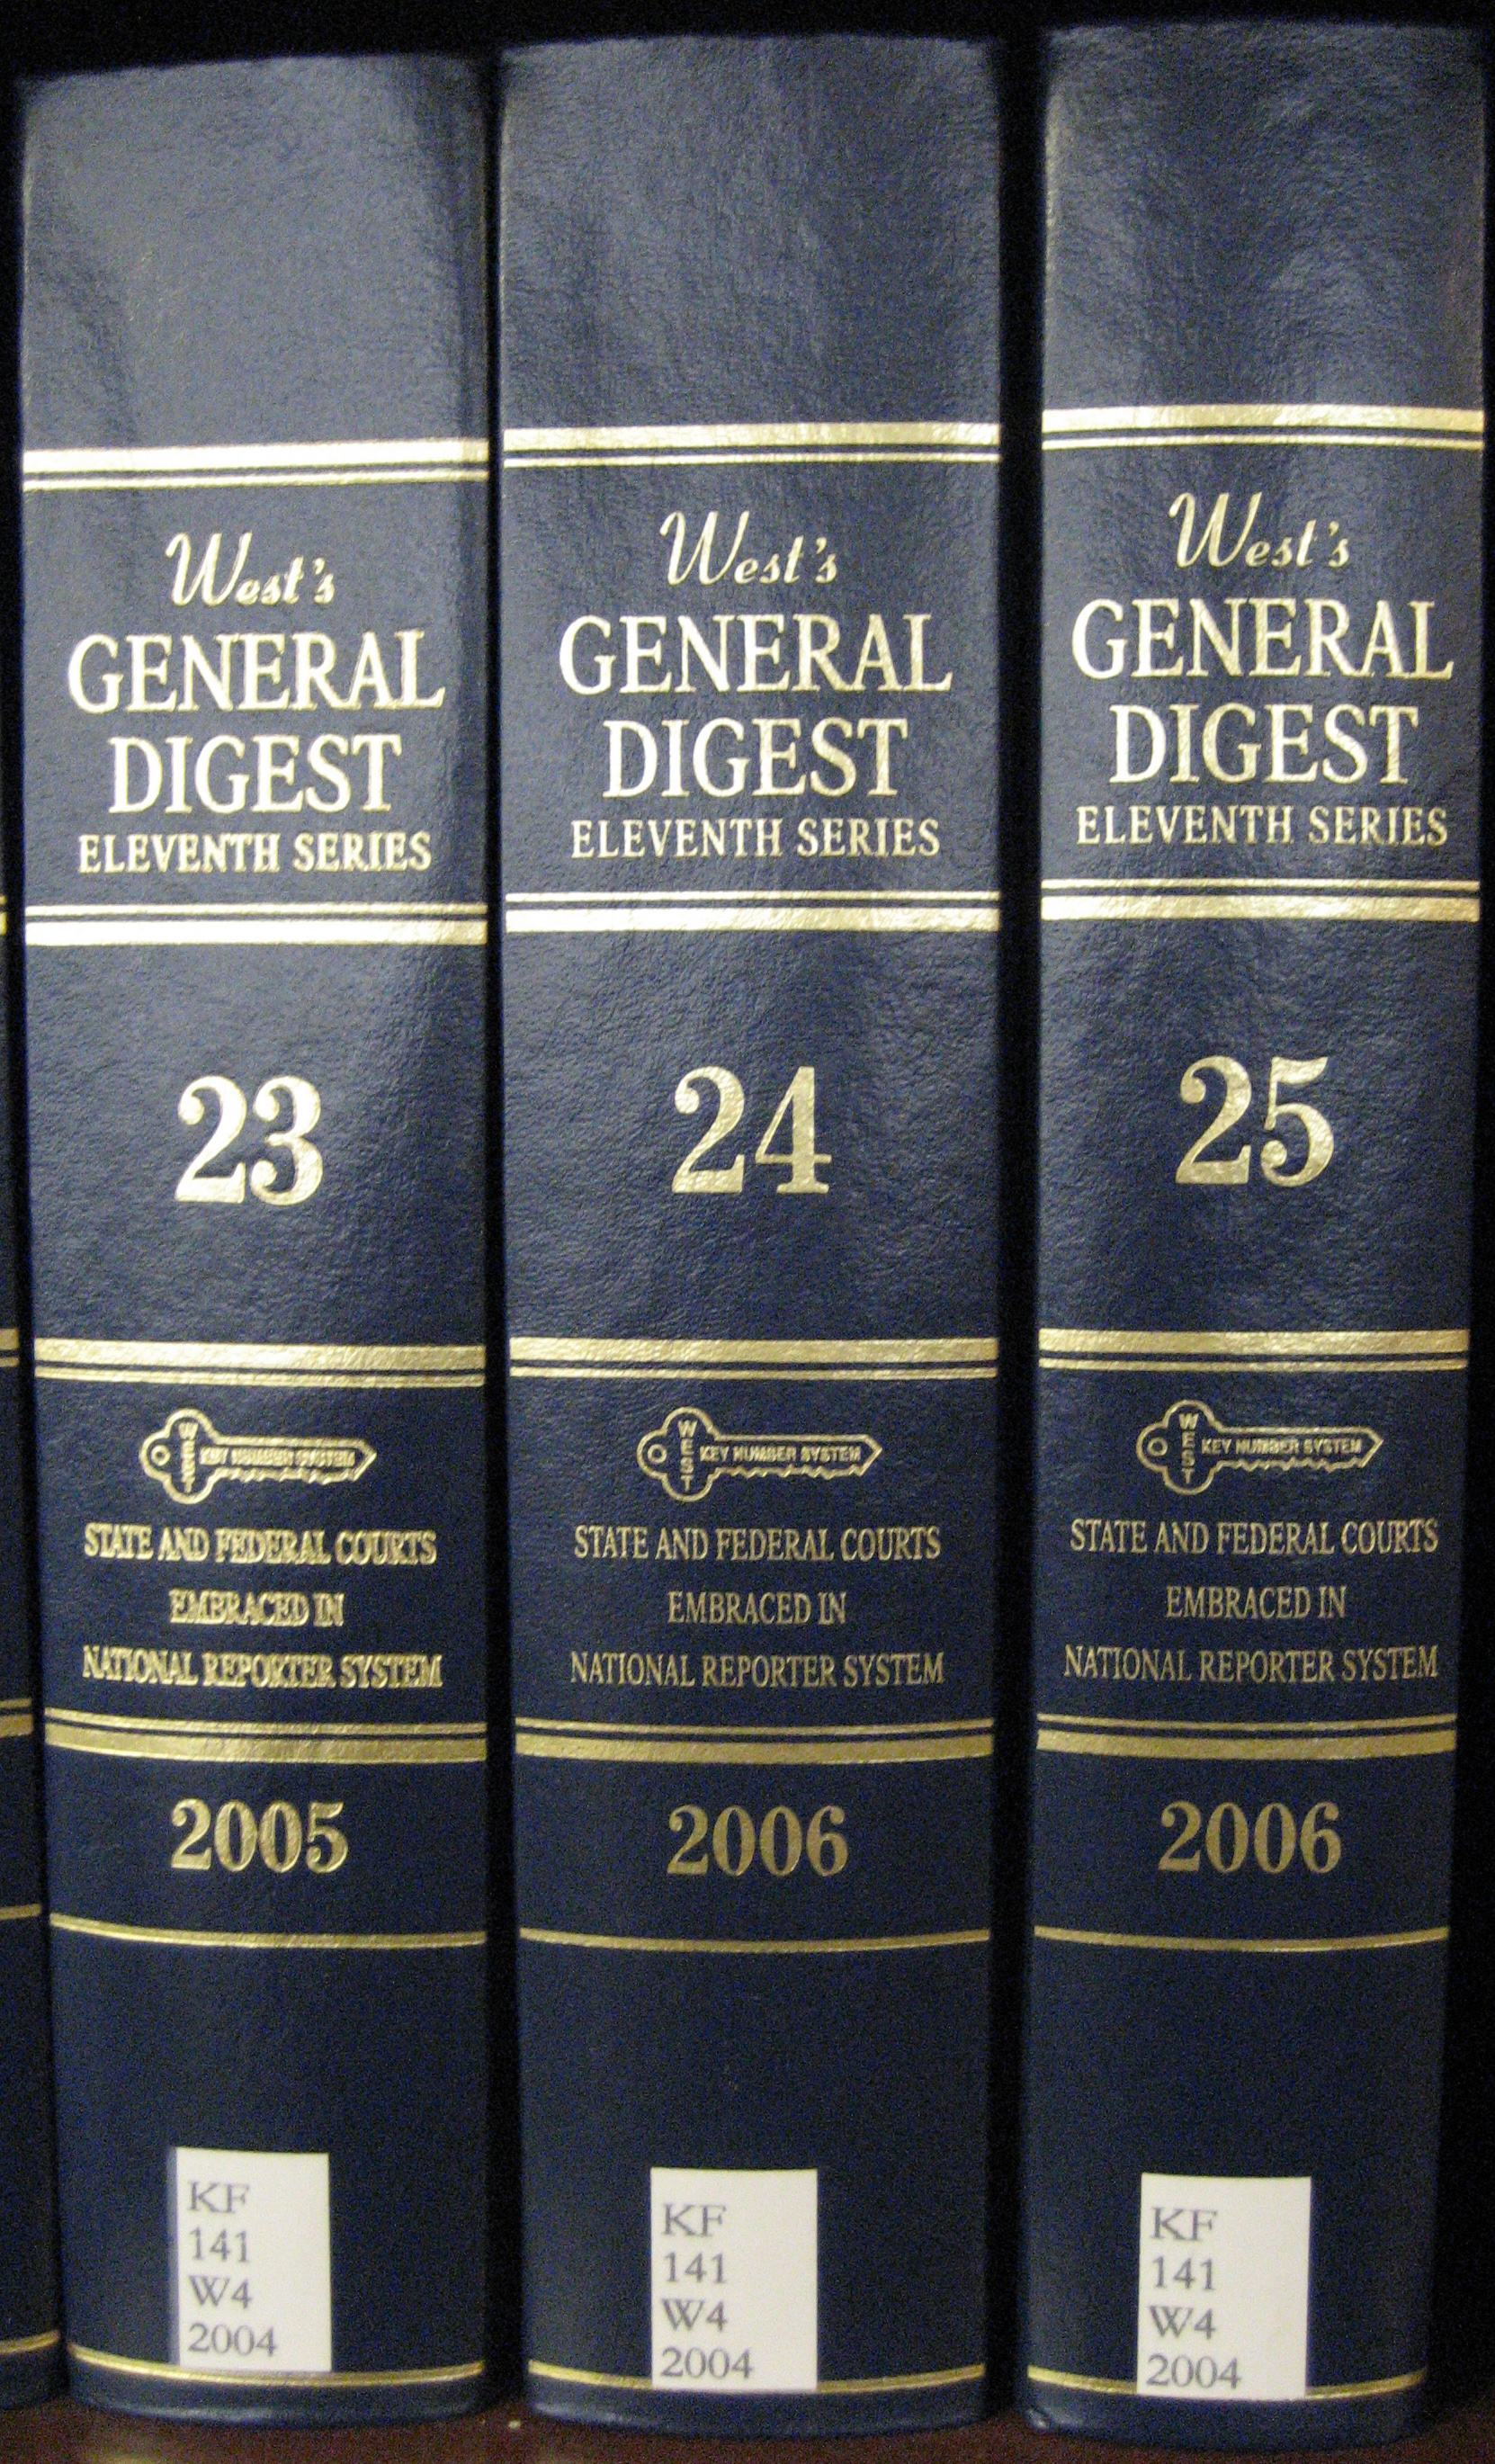 West's General Digest books